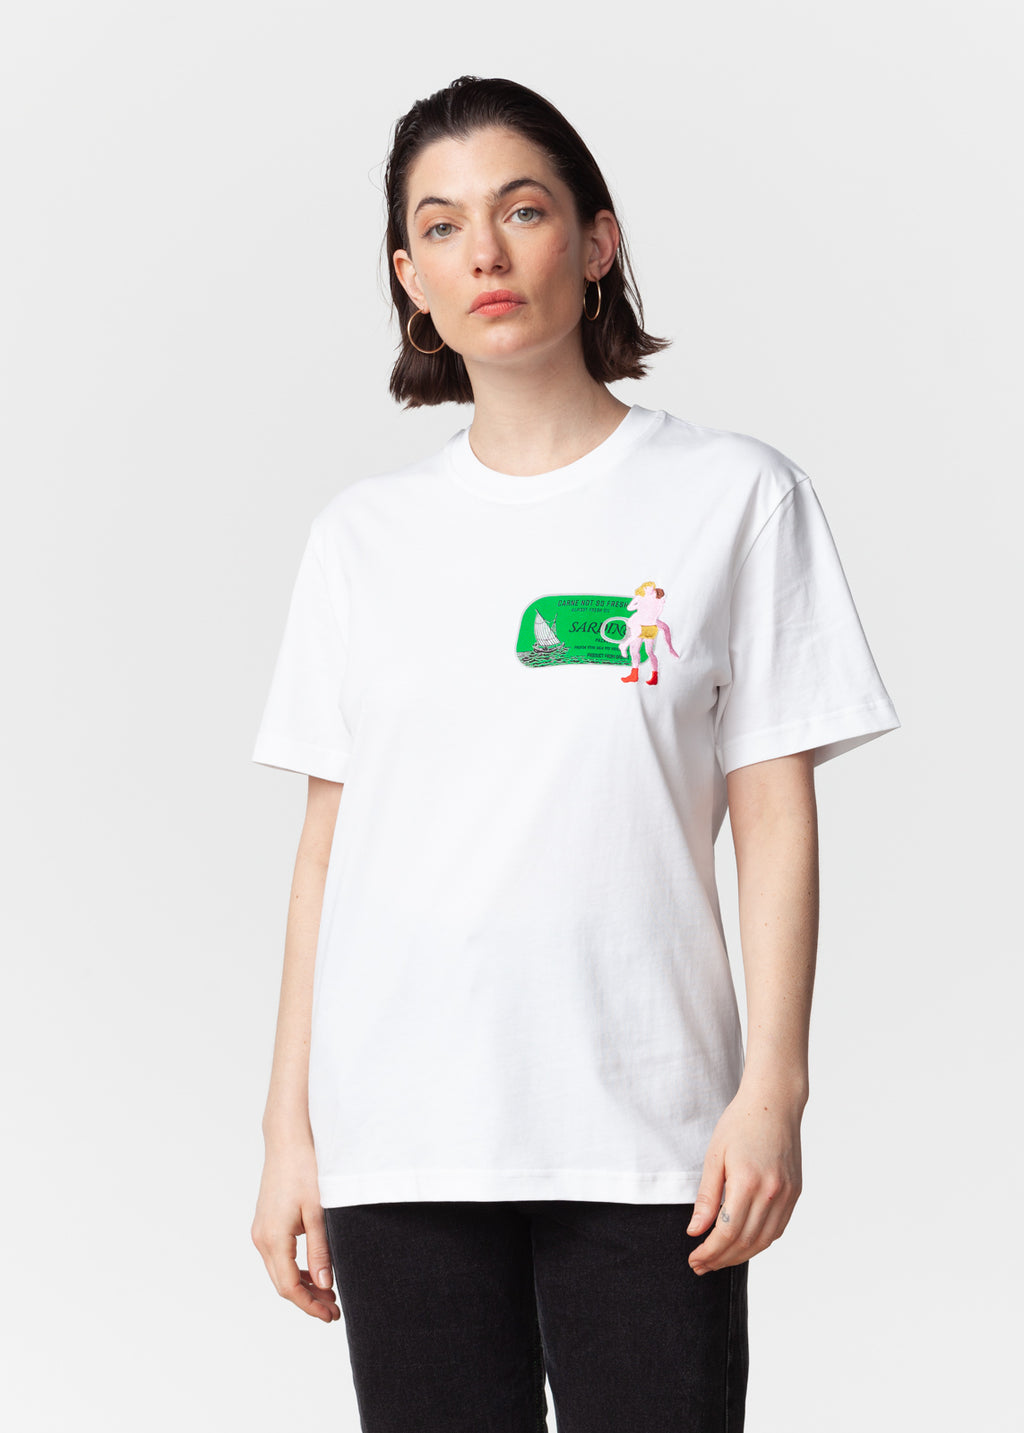 Can Touch This T-Shirt